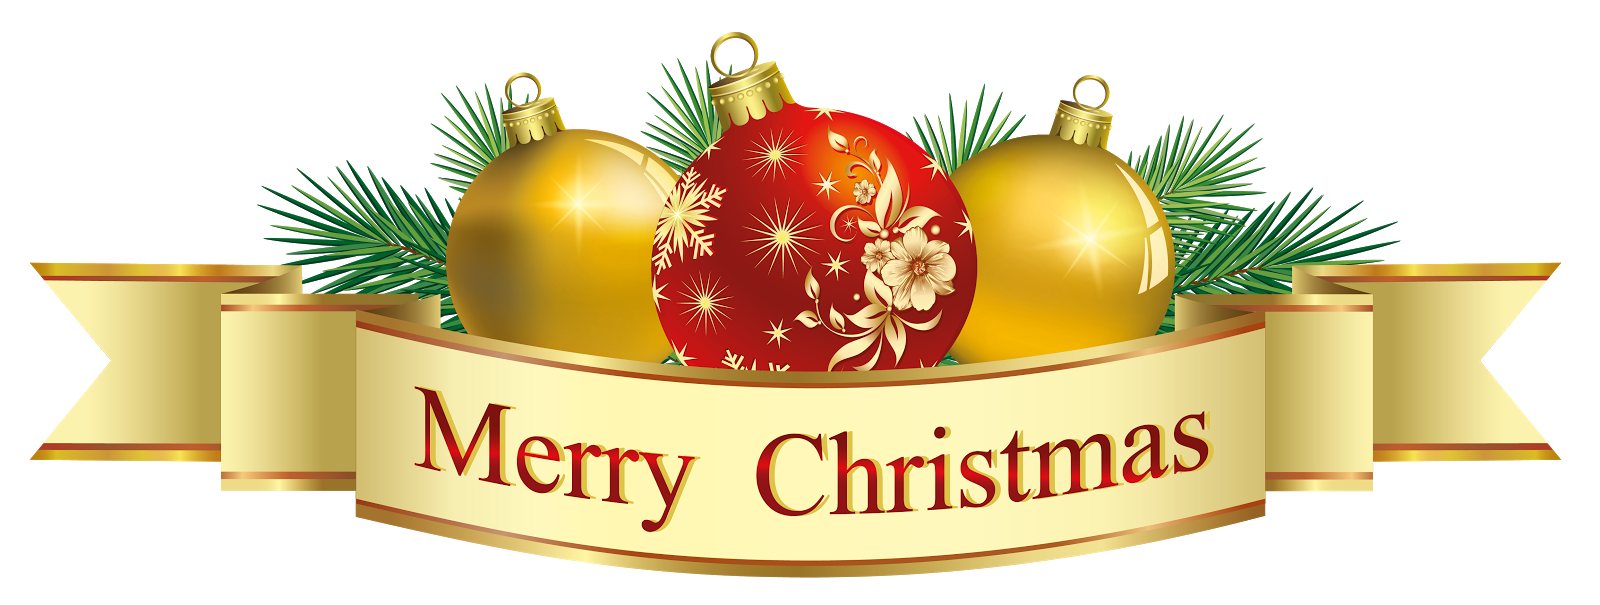 Merry christmas religious clipart png library 50 - 41 - WELCOME TO THE ADVENT SHOP png library